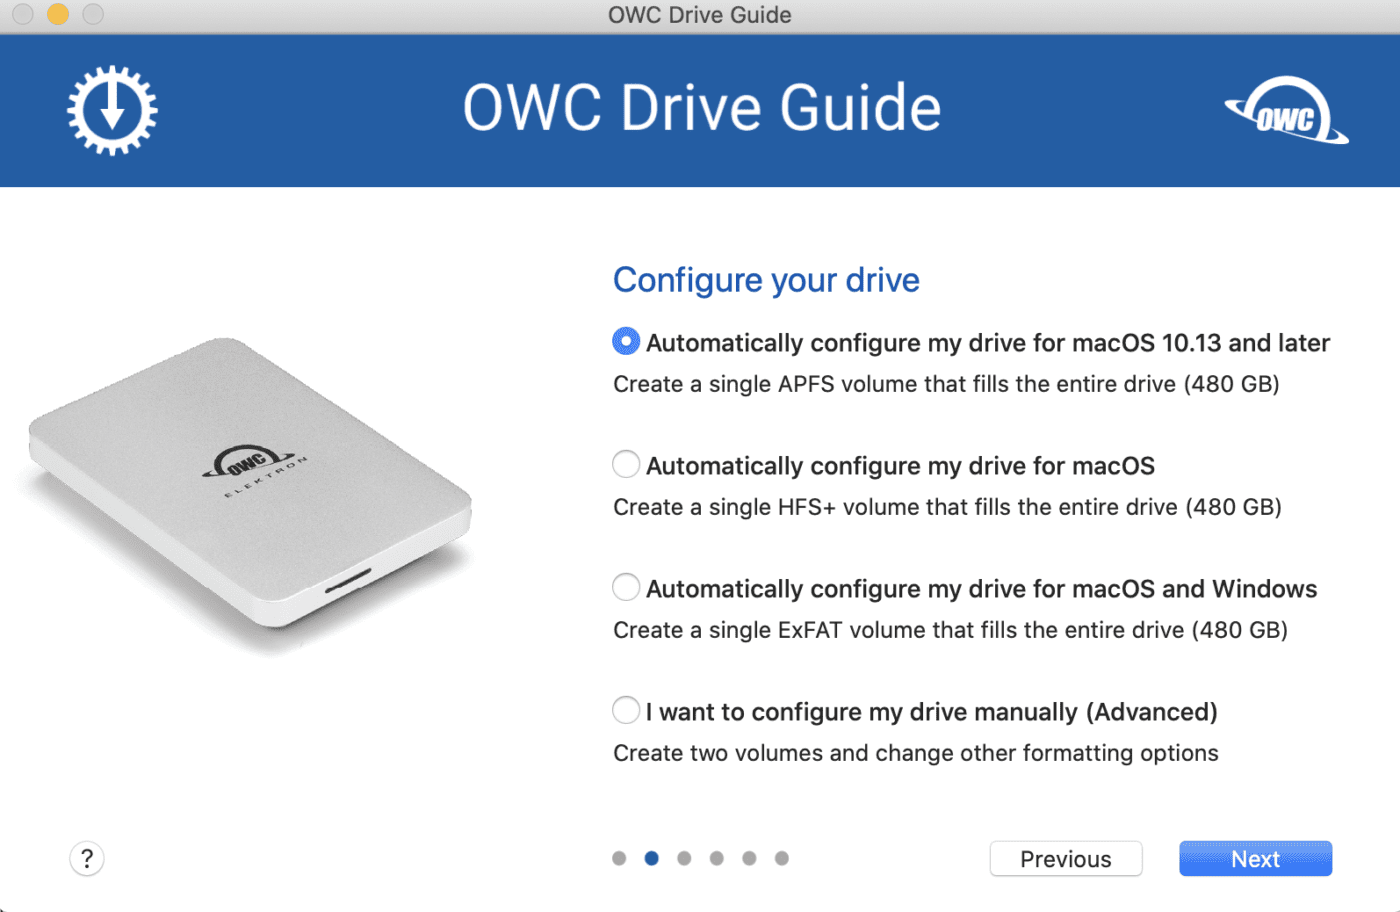 The OWC Drive Guide app is preinstalled on the Envoy Pro Elektron and makes setup of the drive a snap.